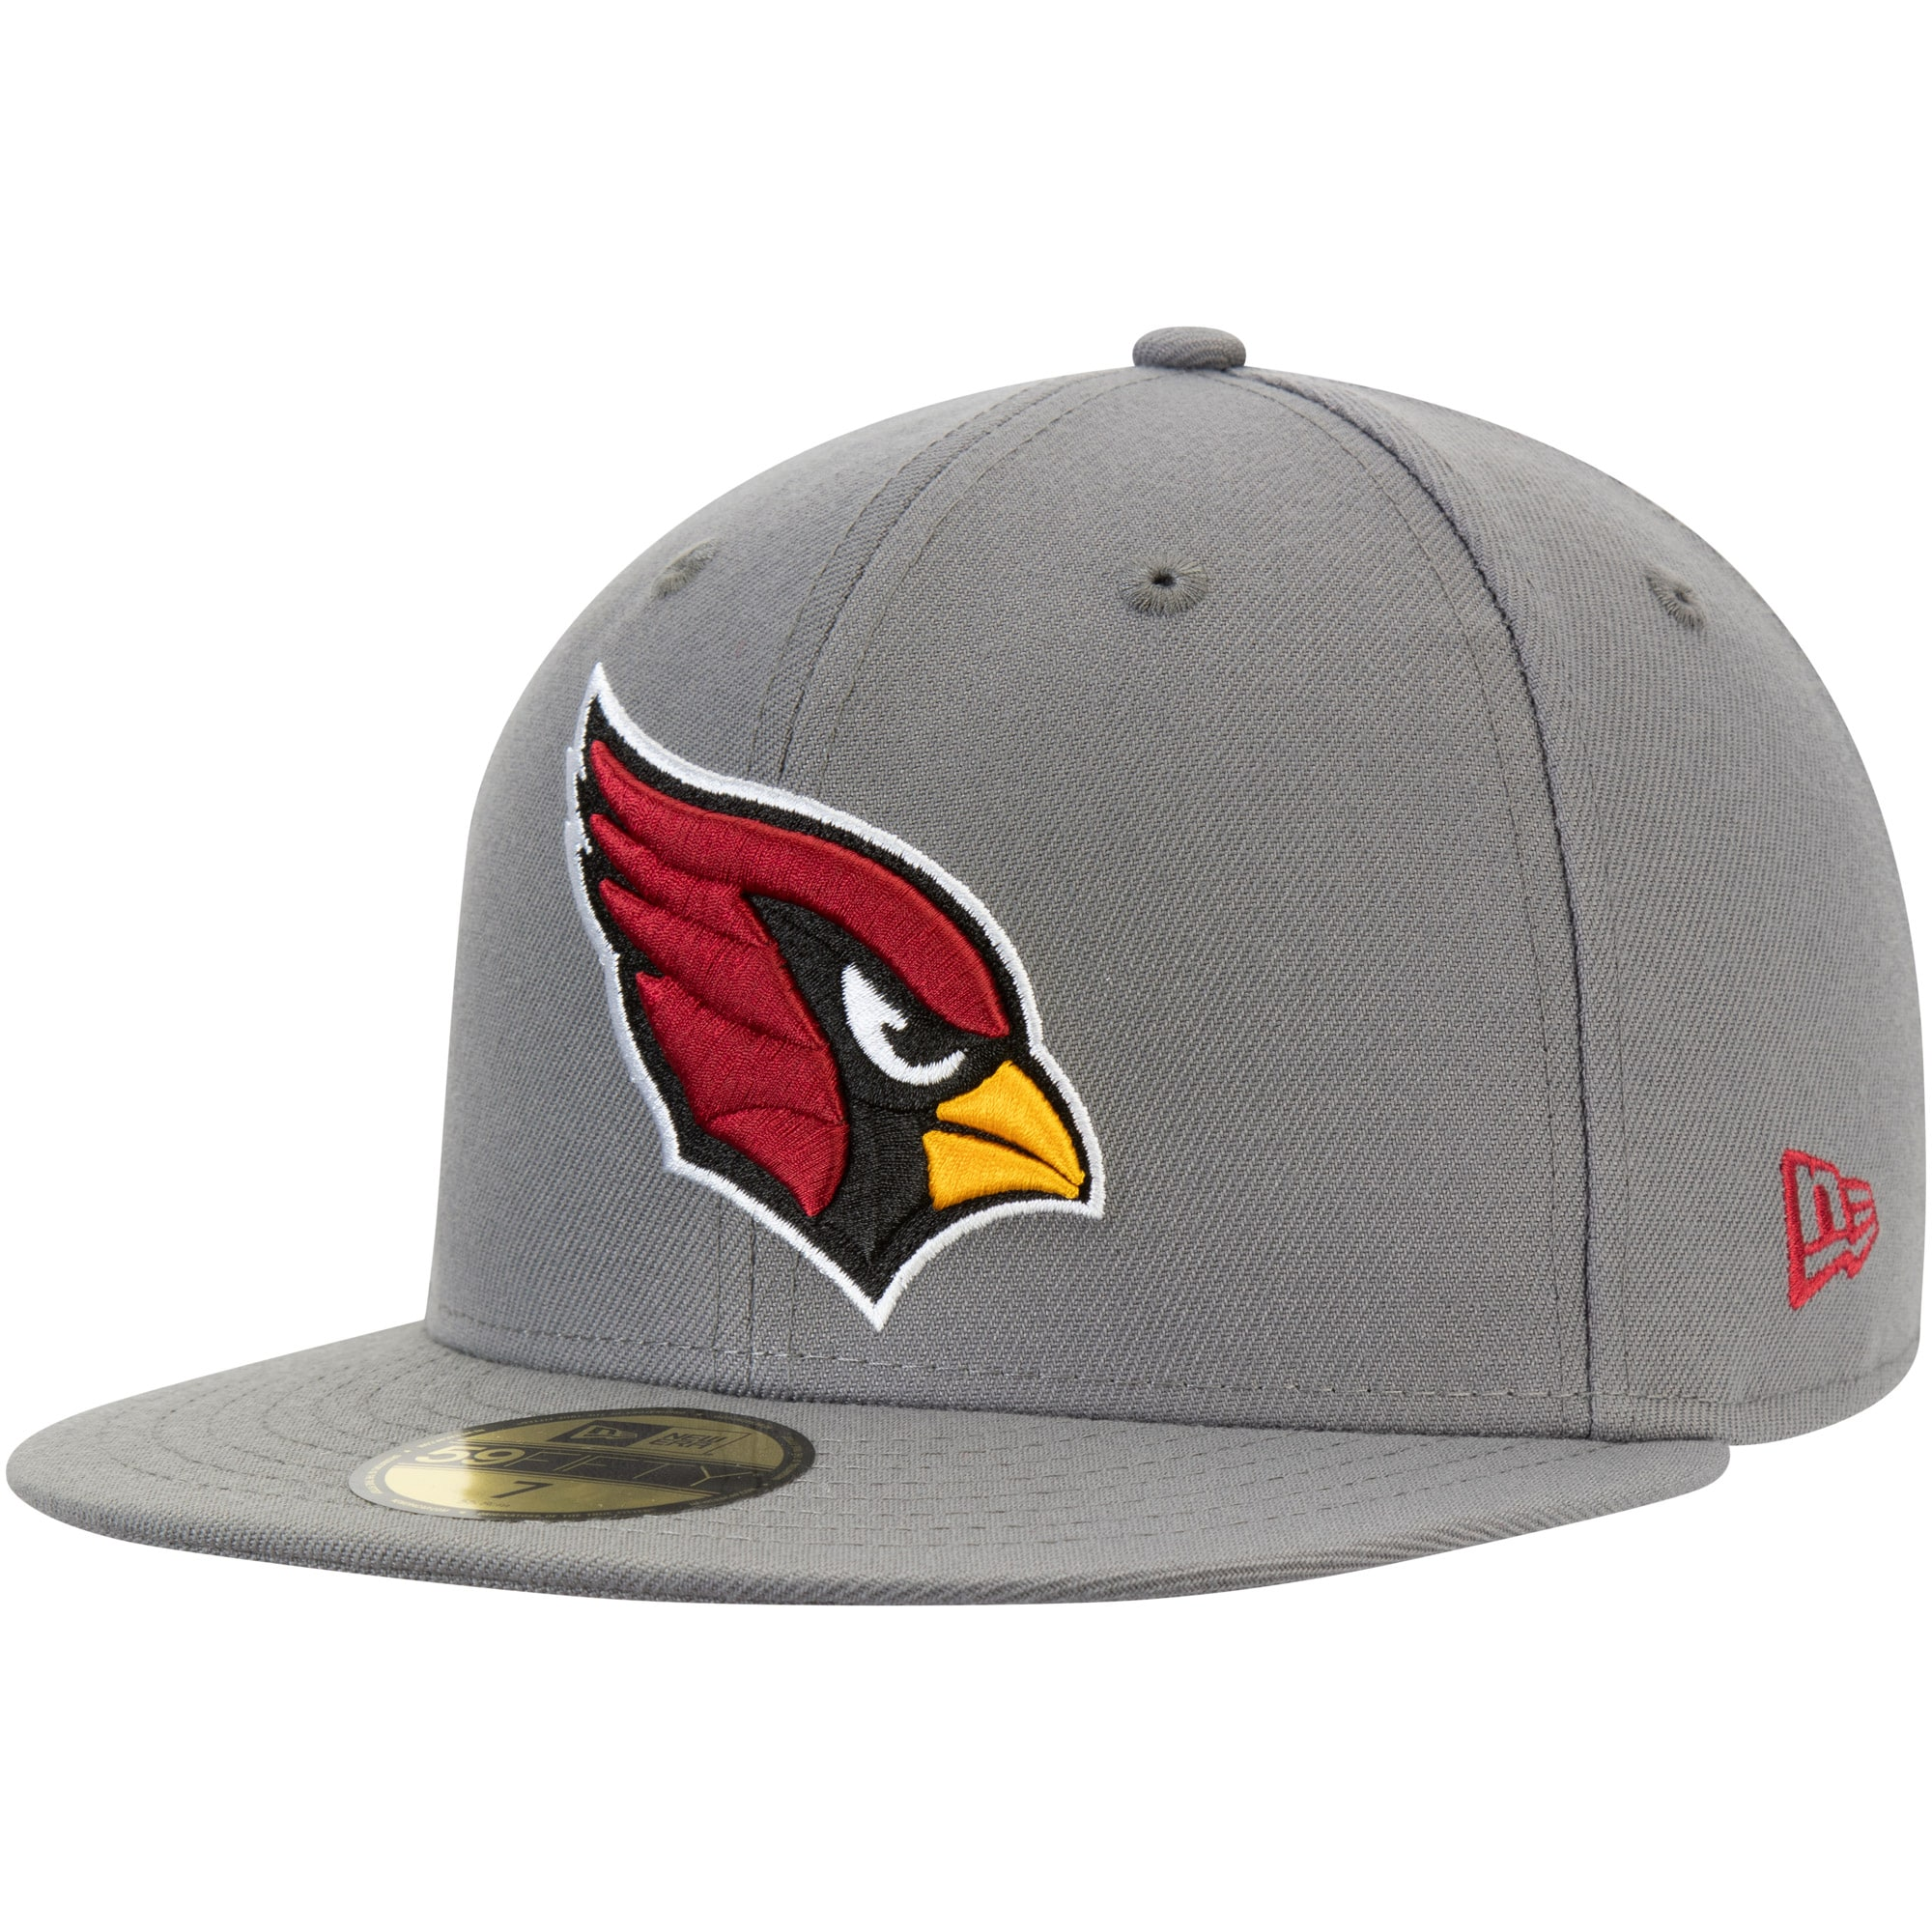 Arizona Cardinals New Era Storm 59FIFTY Fitted Hat - Graphite